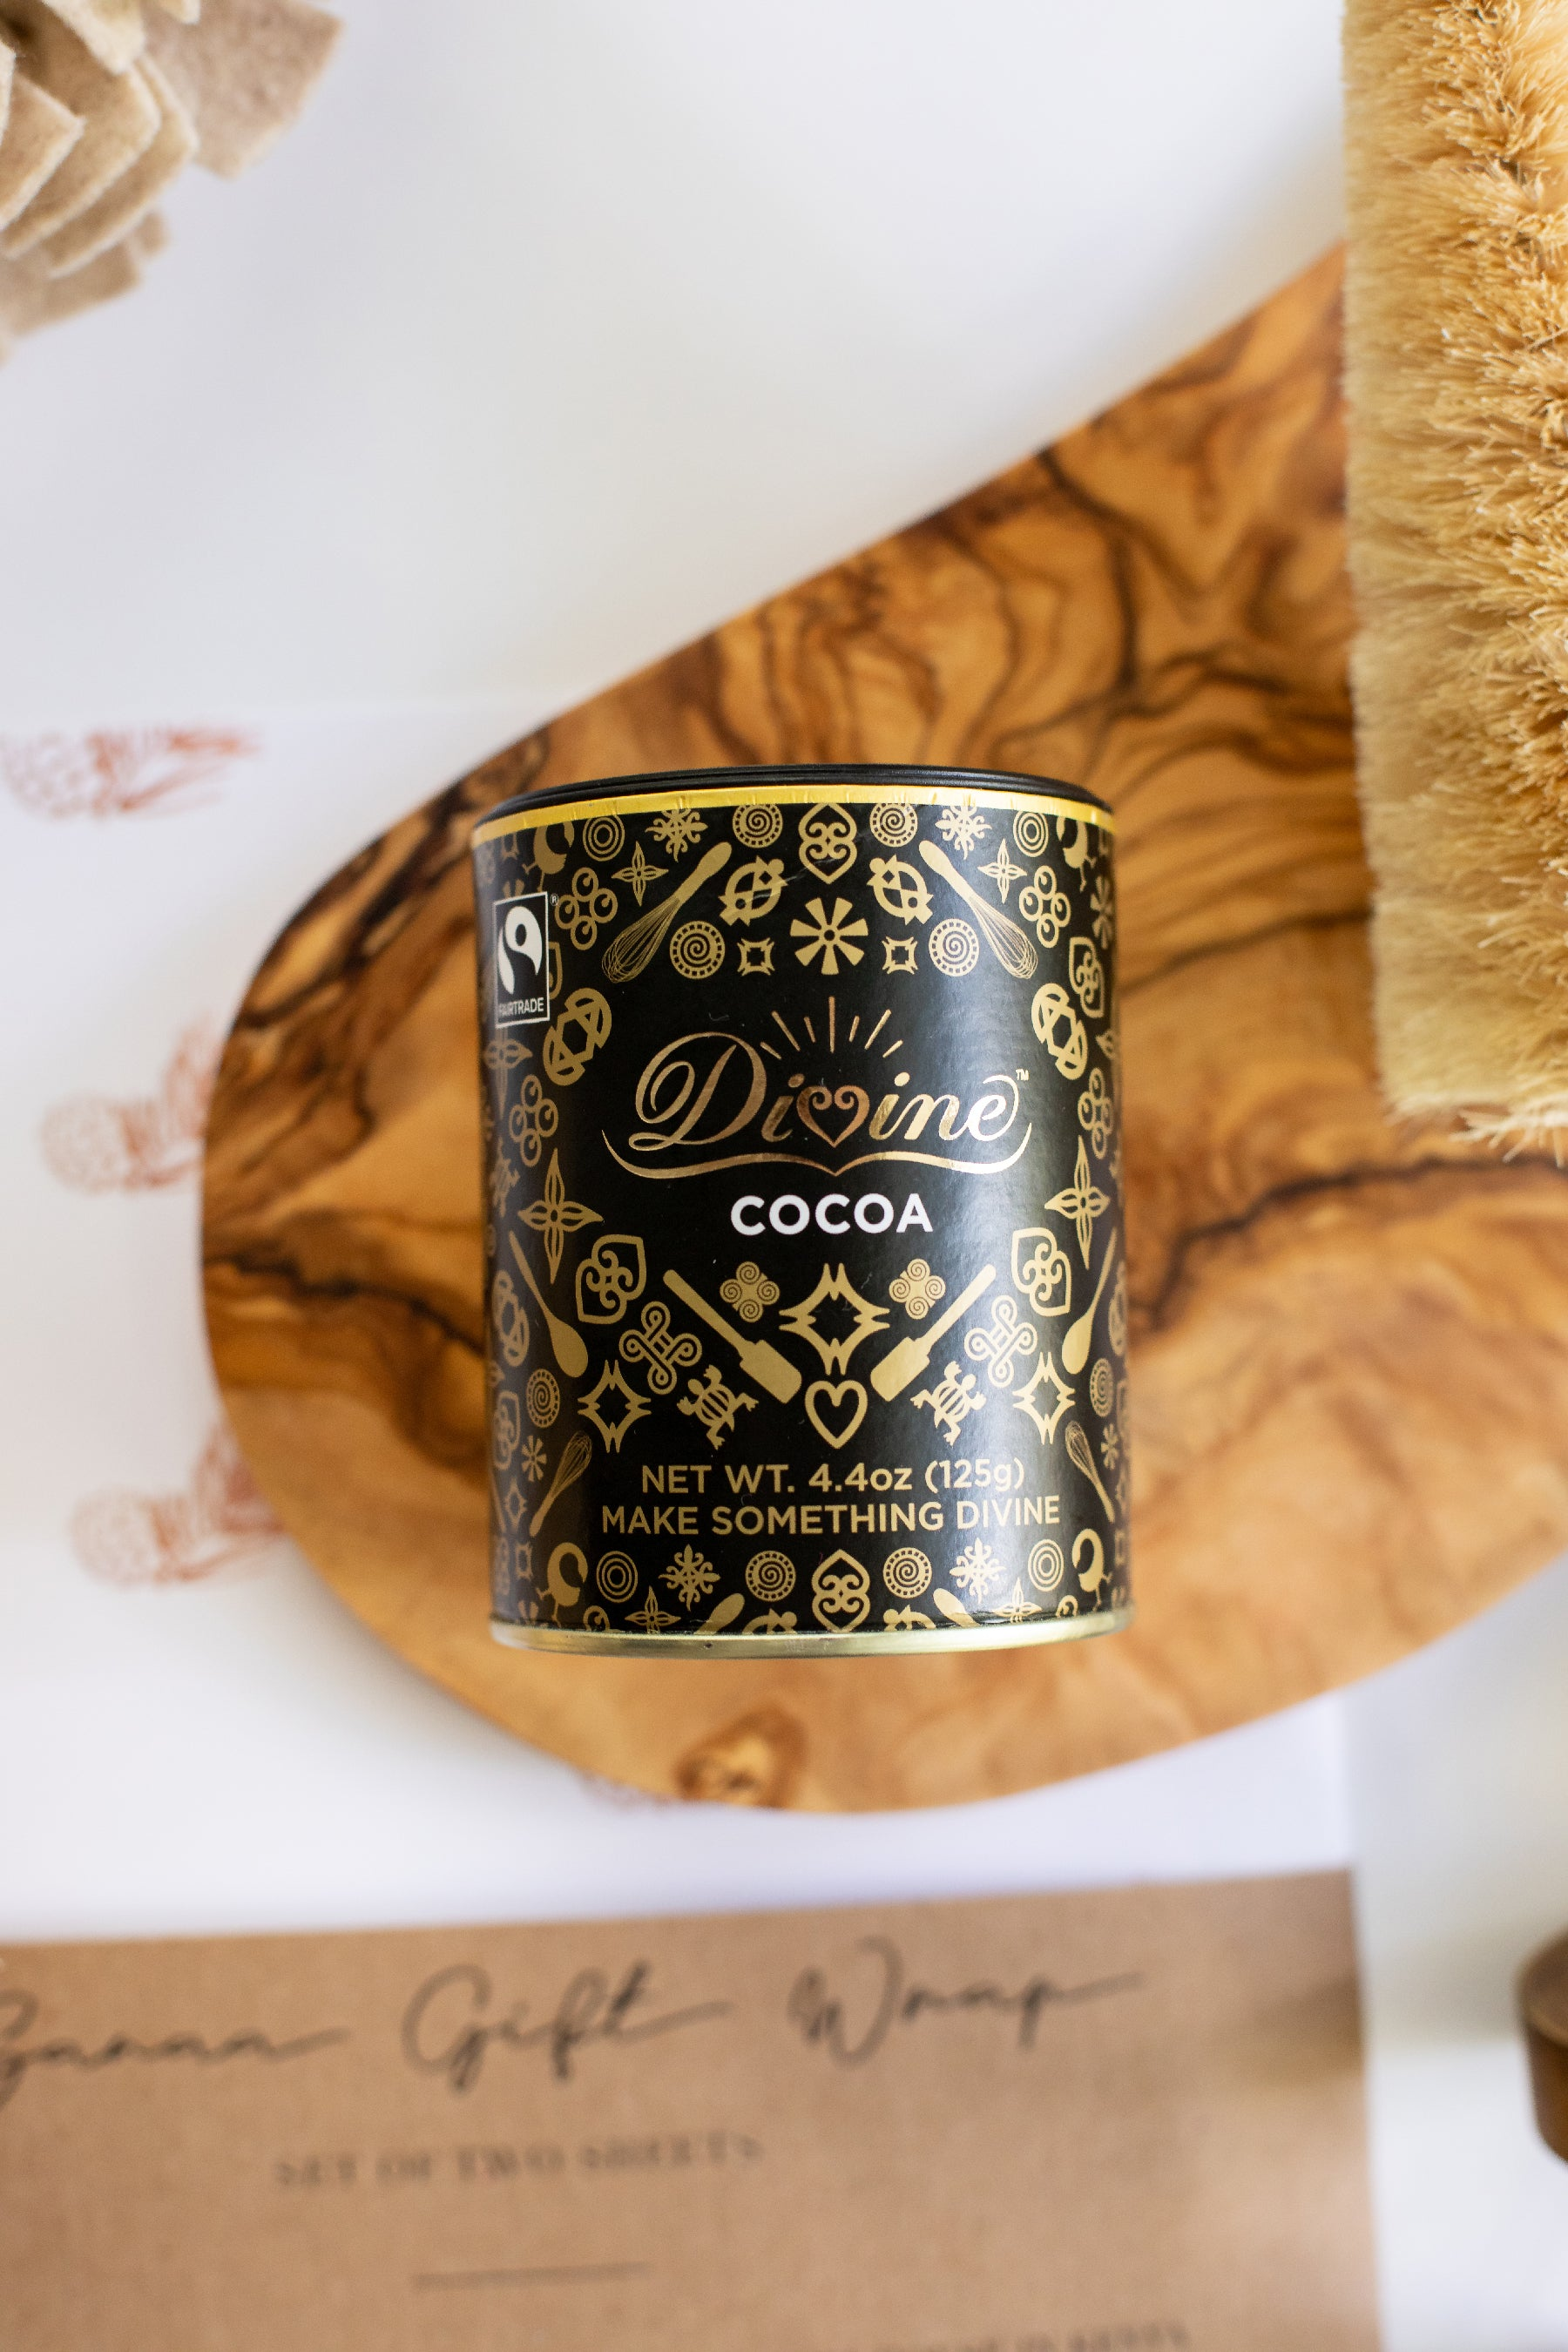 Divine Cocoa | Unsweetened Baking Chocolate Chocolate - Fair Trade - Mercy House Global